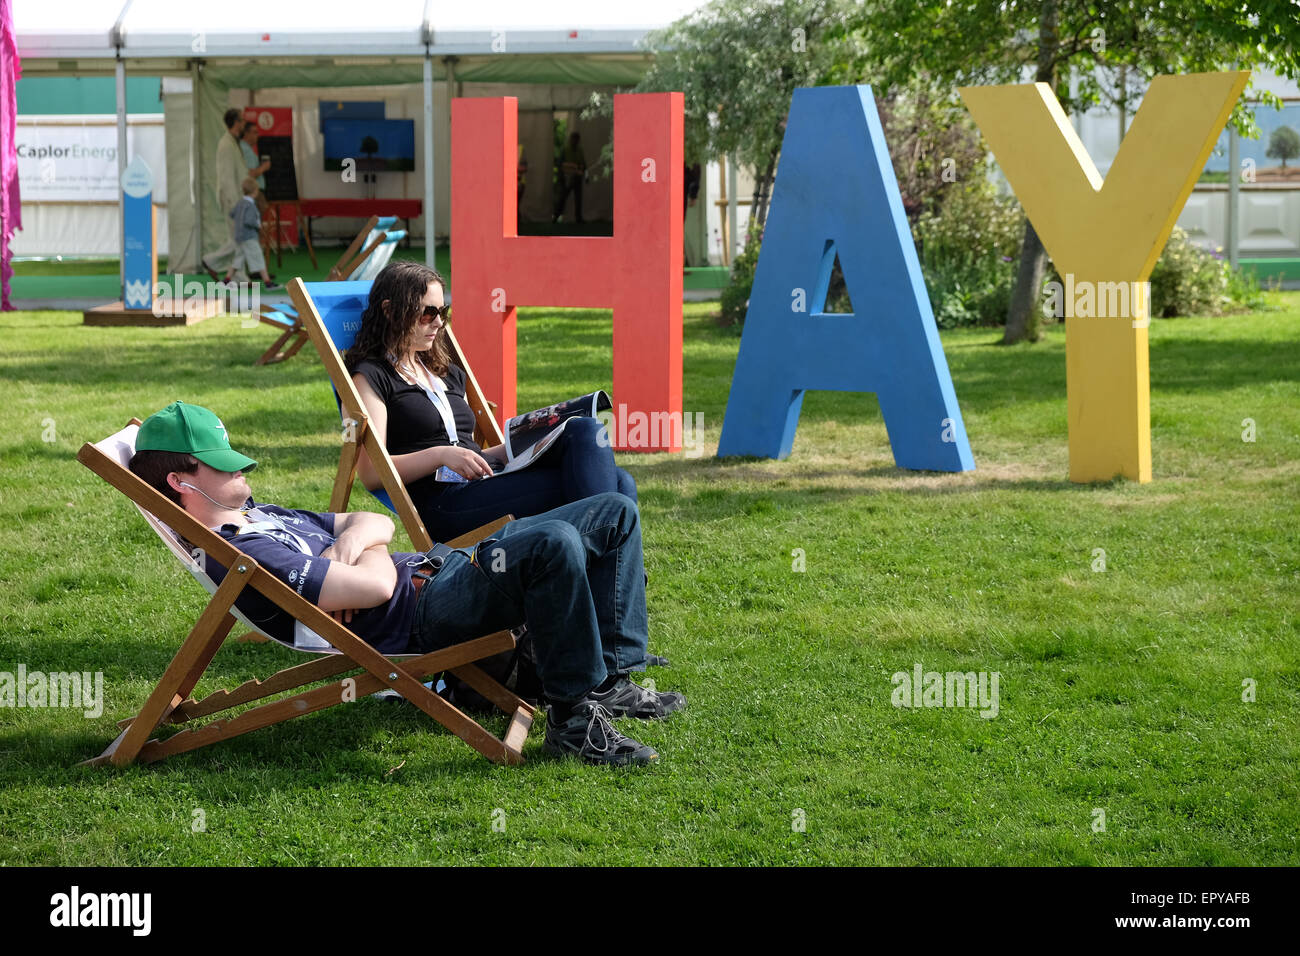 Hay Festival, Powys, Wales - May 2015 - Early visitors to the first weekend of this years Hay Festival enjoy the - Stock Image